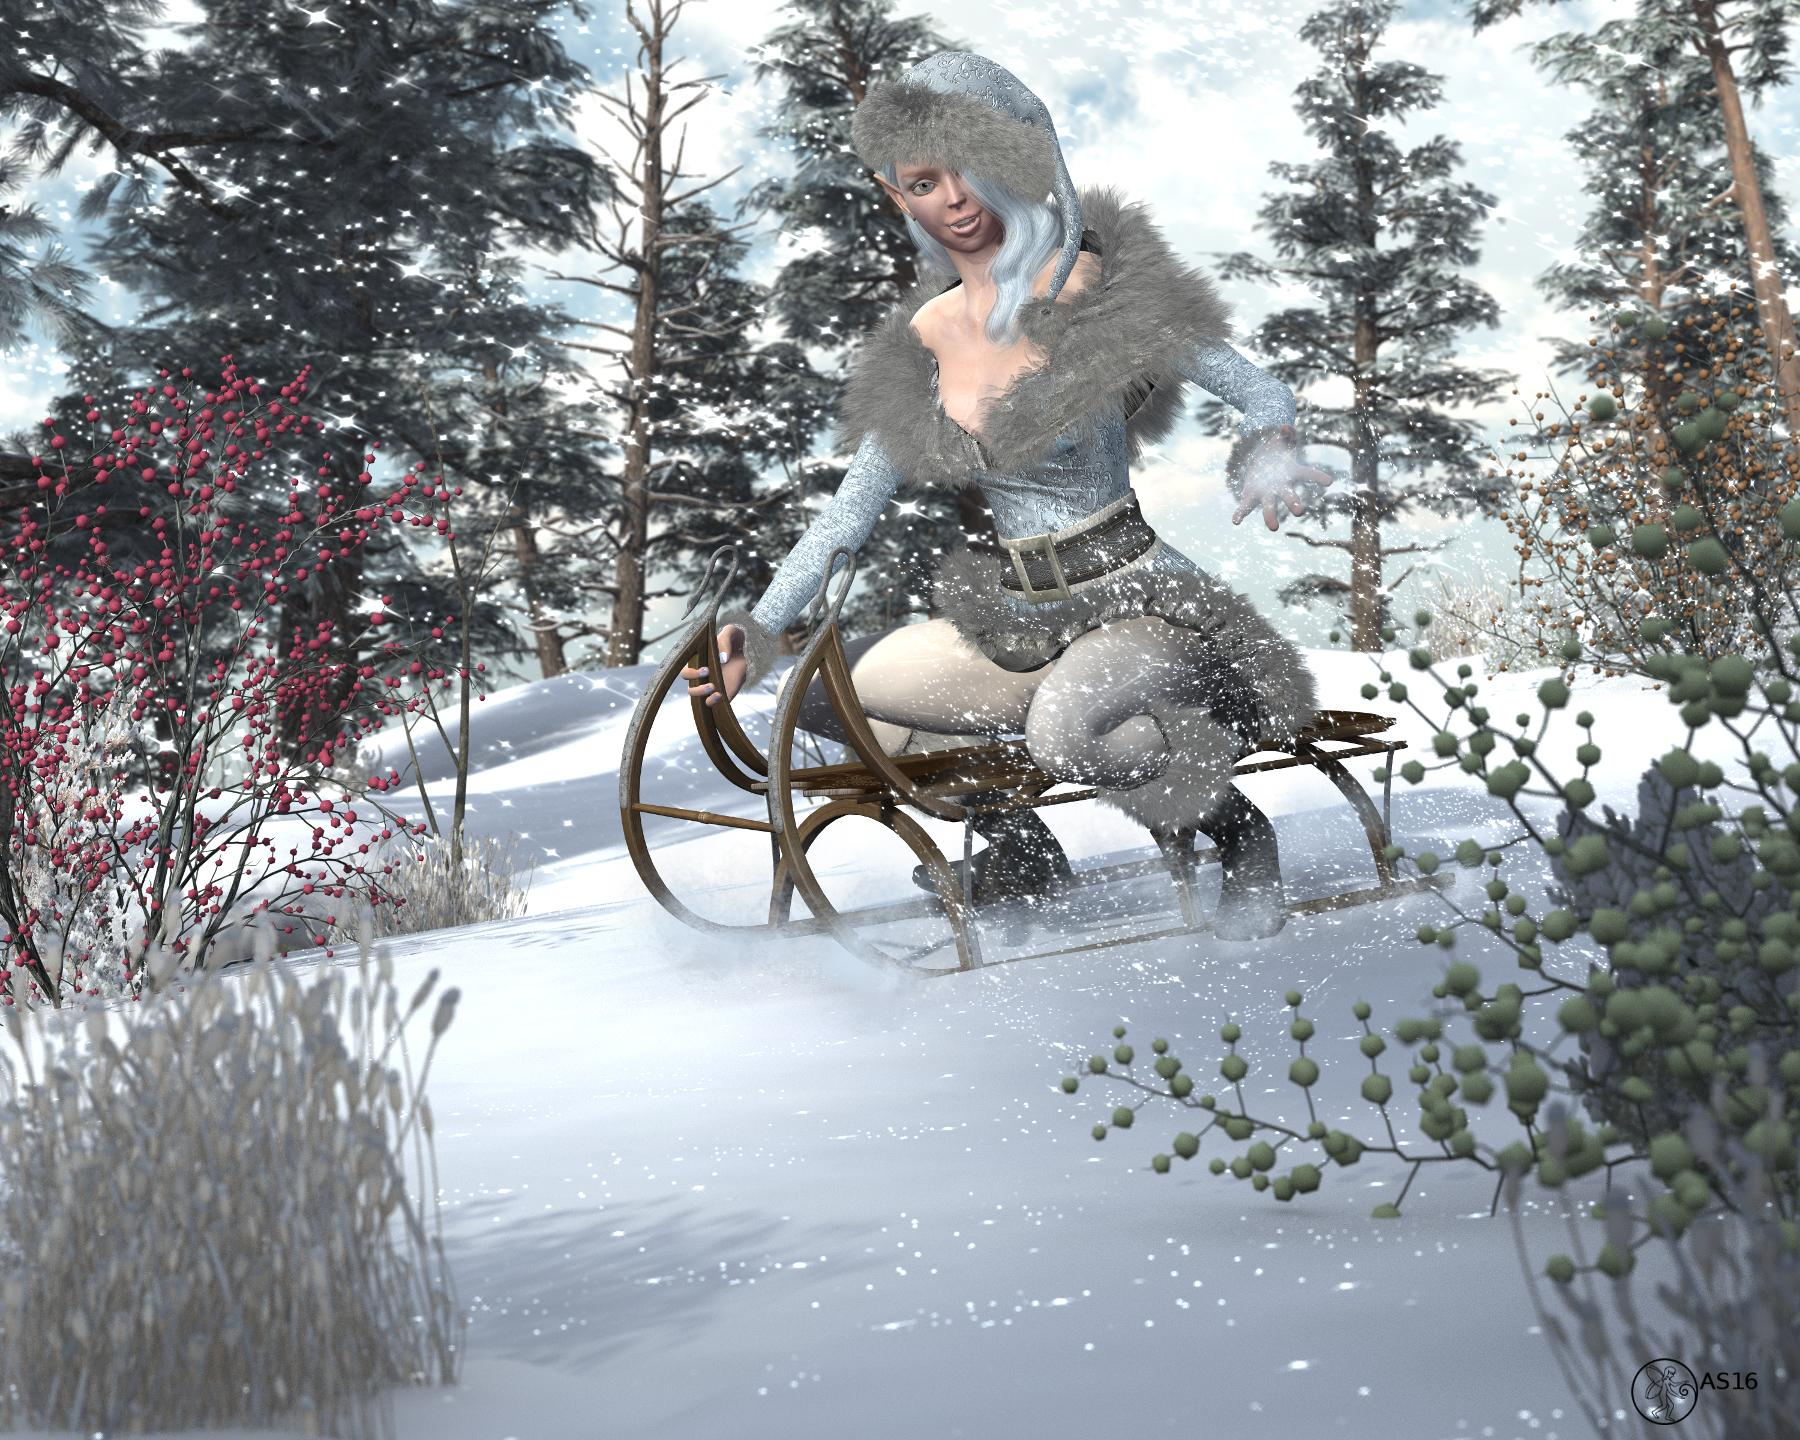 http://www.daz3d.com/forums/uploads/FileUpload/35/1da4e17cca32f0dda89db4c98833df.jpg